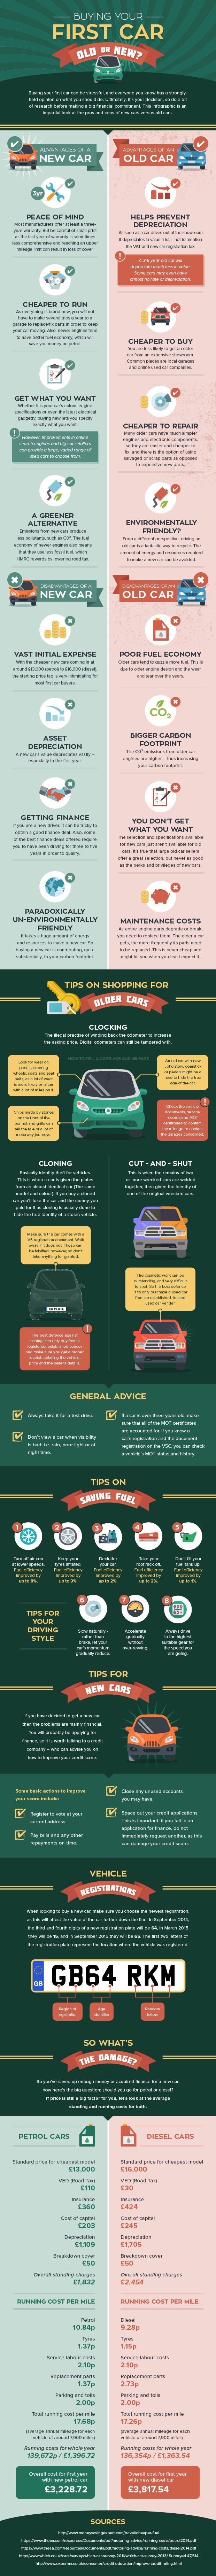 Buying your First Car Old or New? #infographic #Cars #Transportation